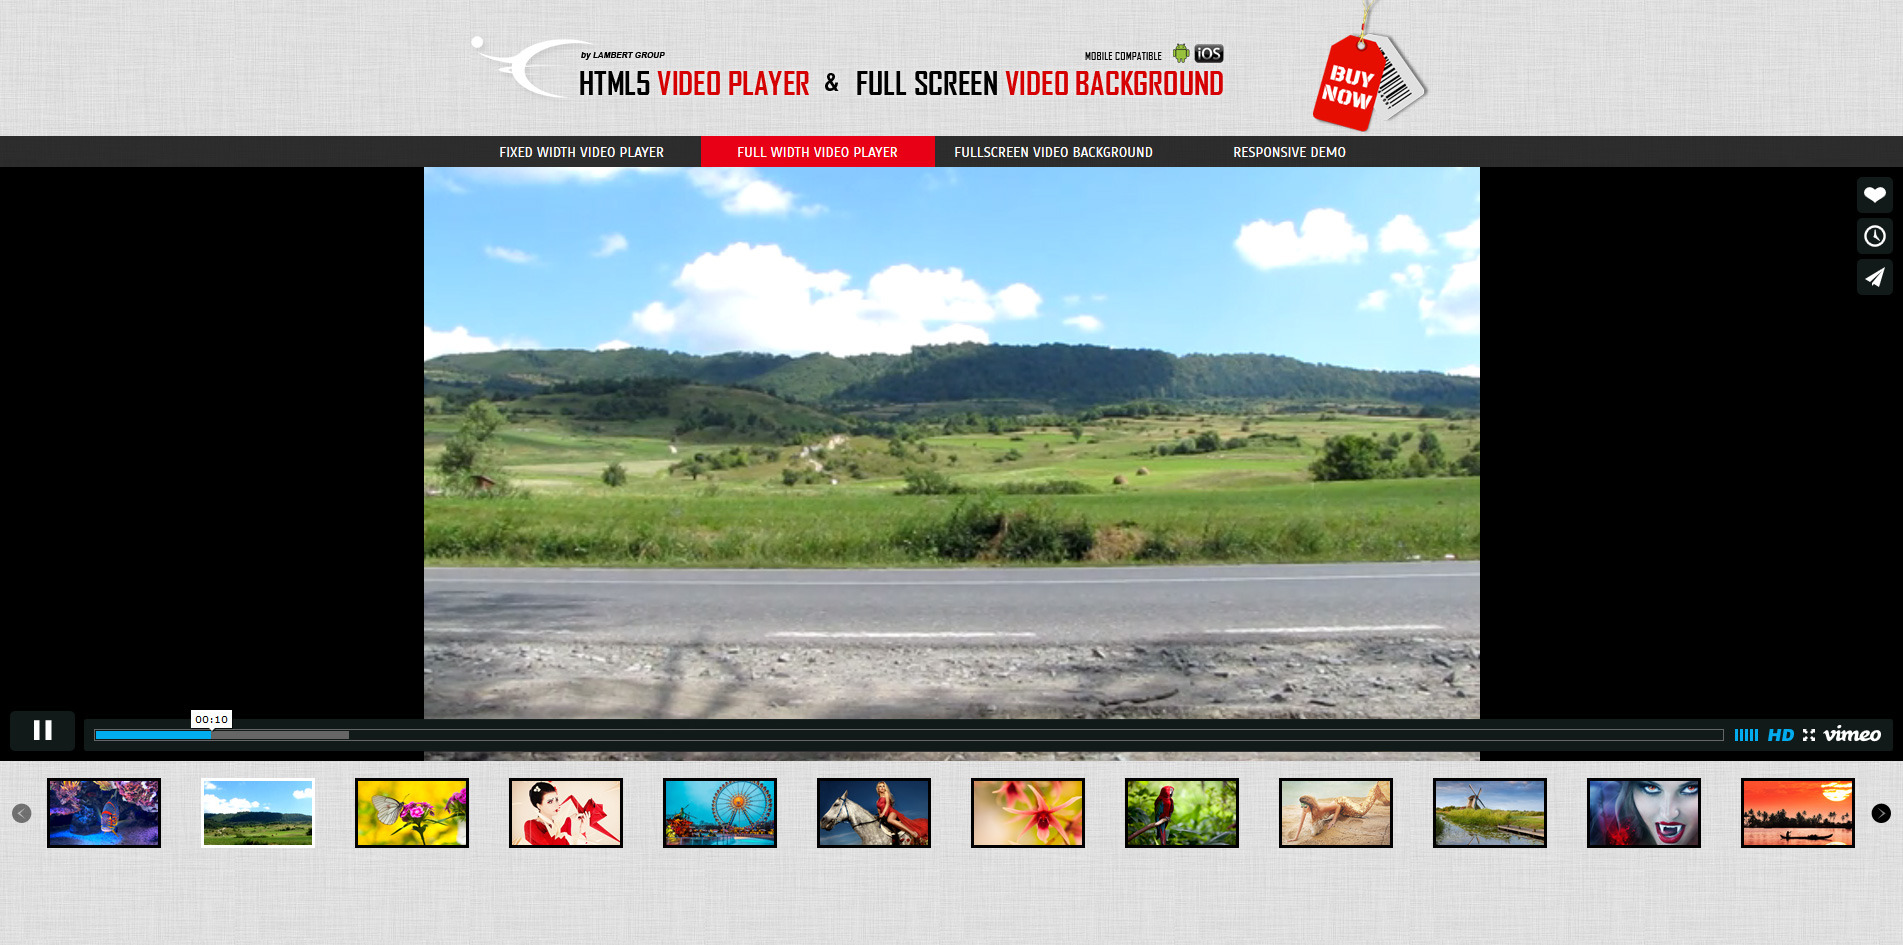 Html5 video players uber bundle by lambertgroup codecanyon for Html5 video player template